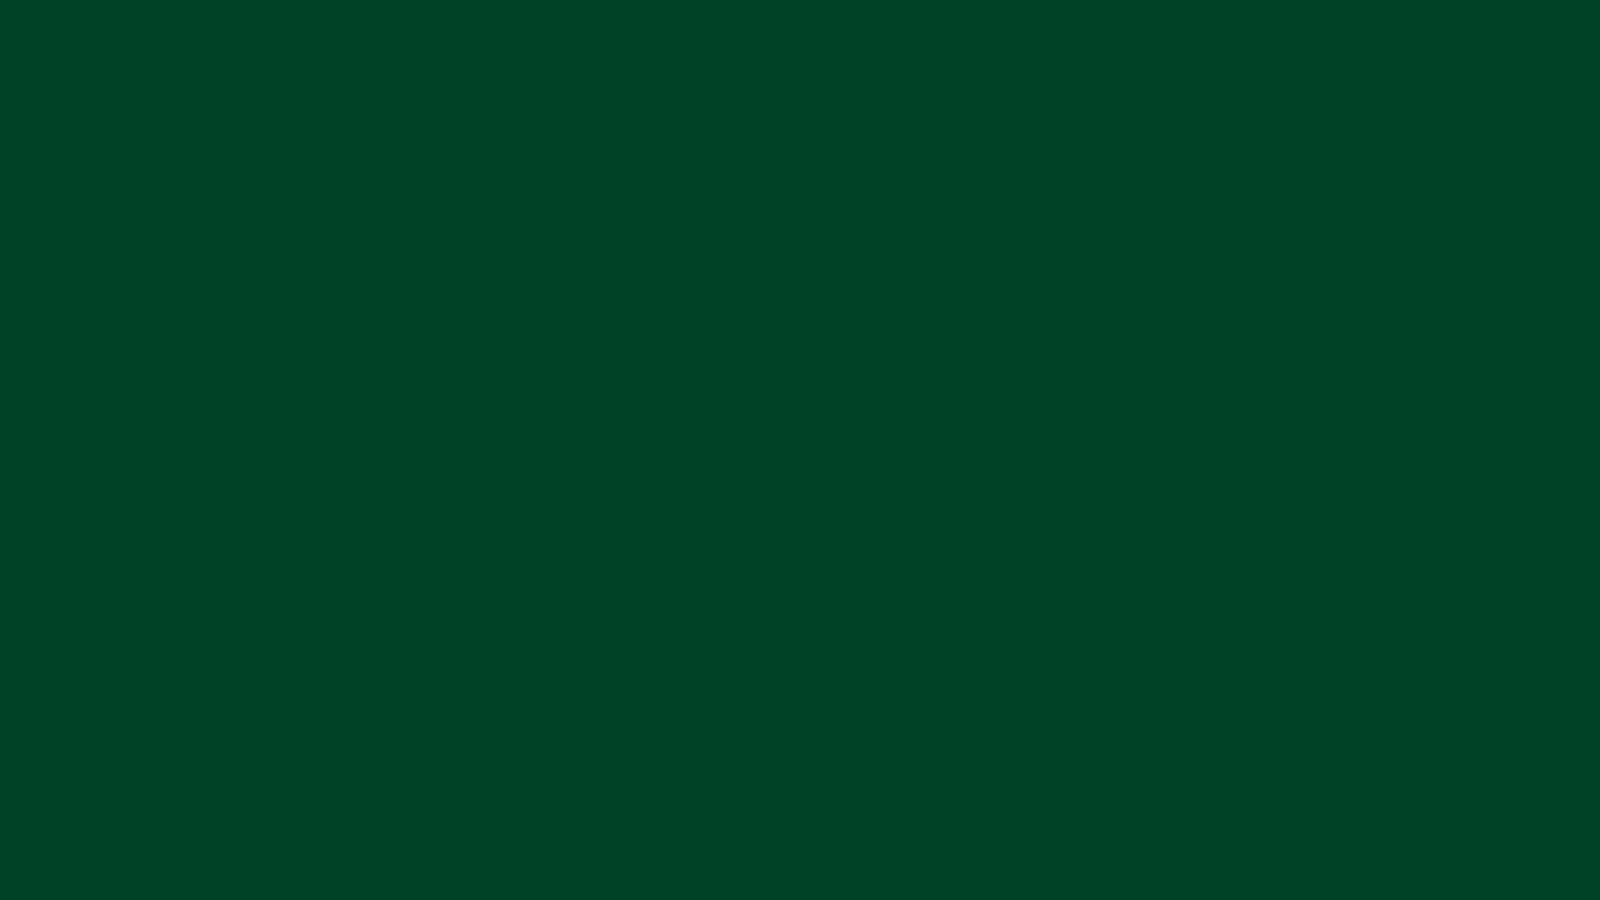 1600x900 British Racing Green Solid Color Background